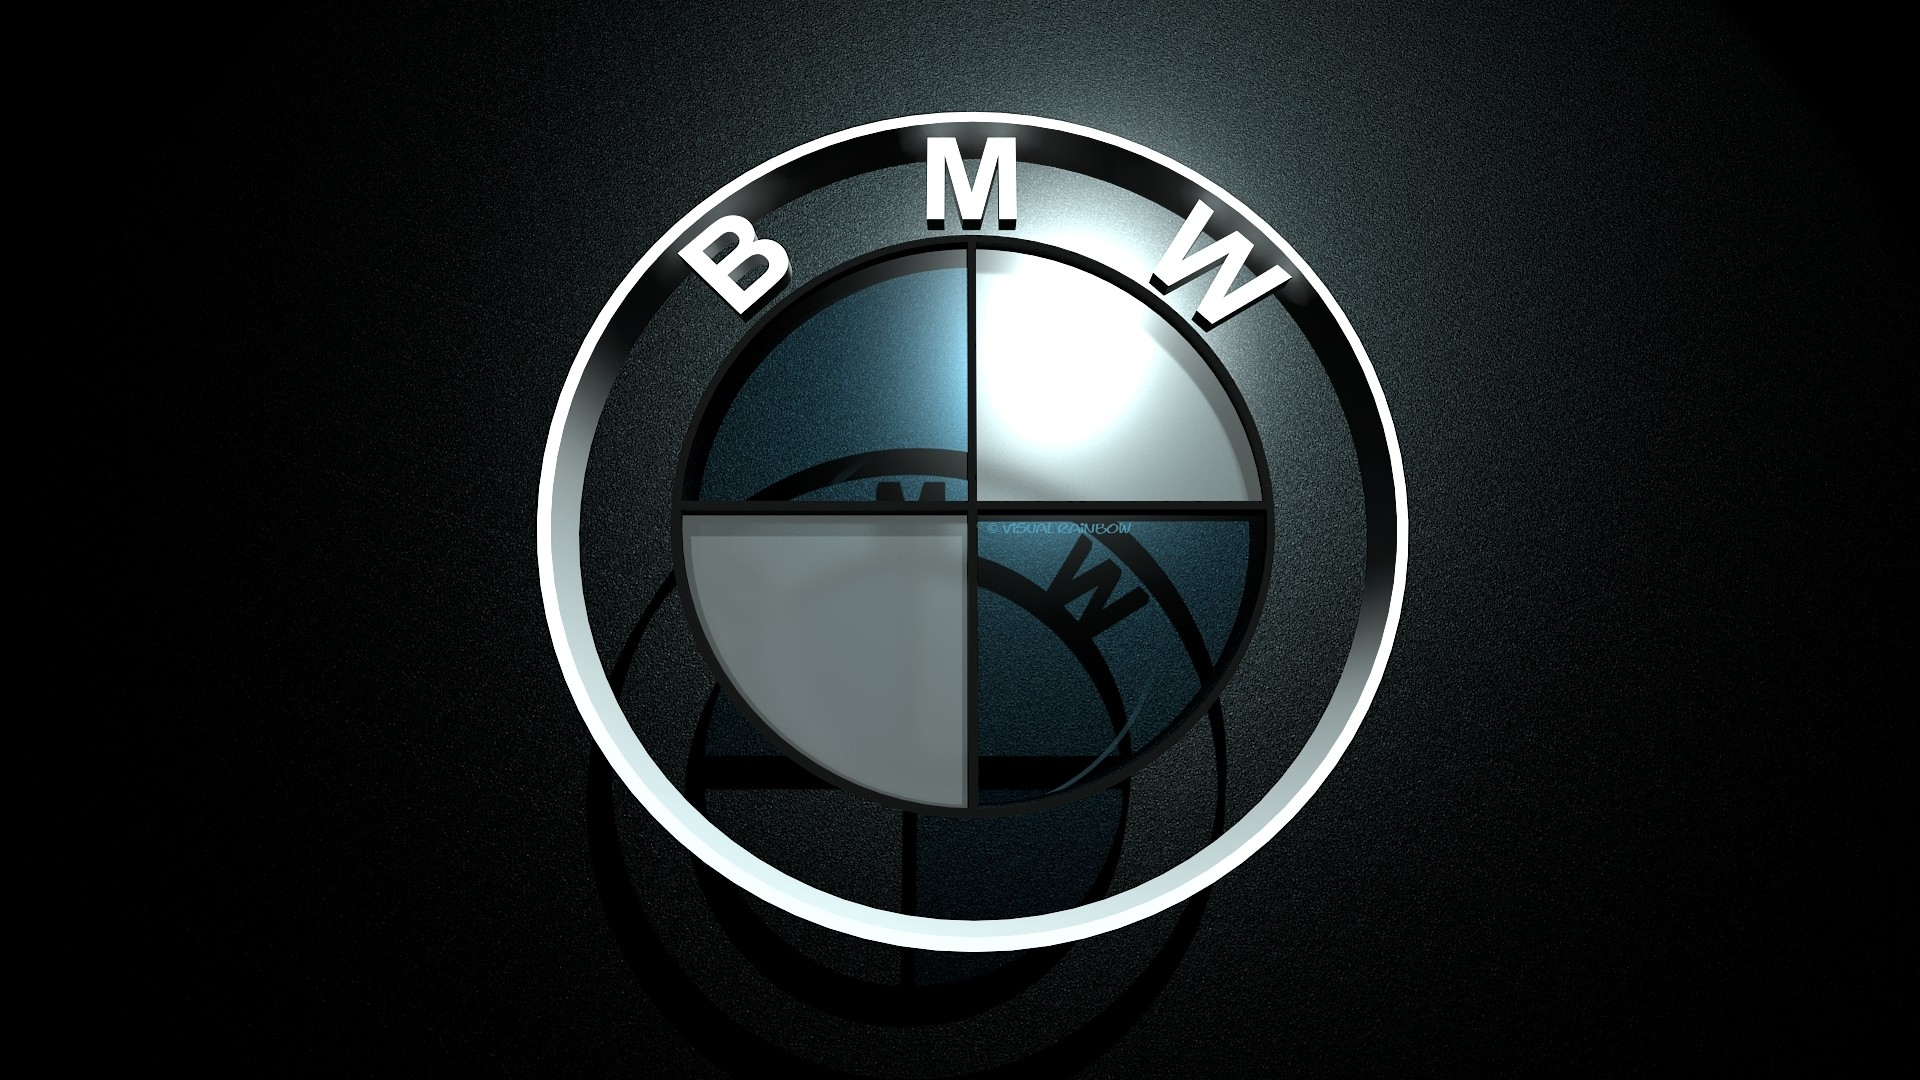 bmw logo hd wallpaper 70 images. Black Bedroom Furniture Sets. Home Design Ideas